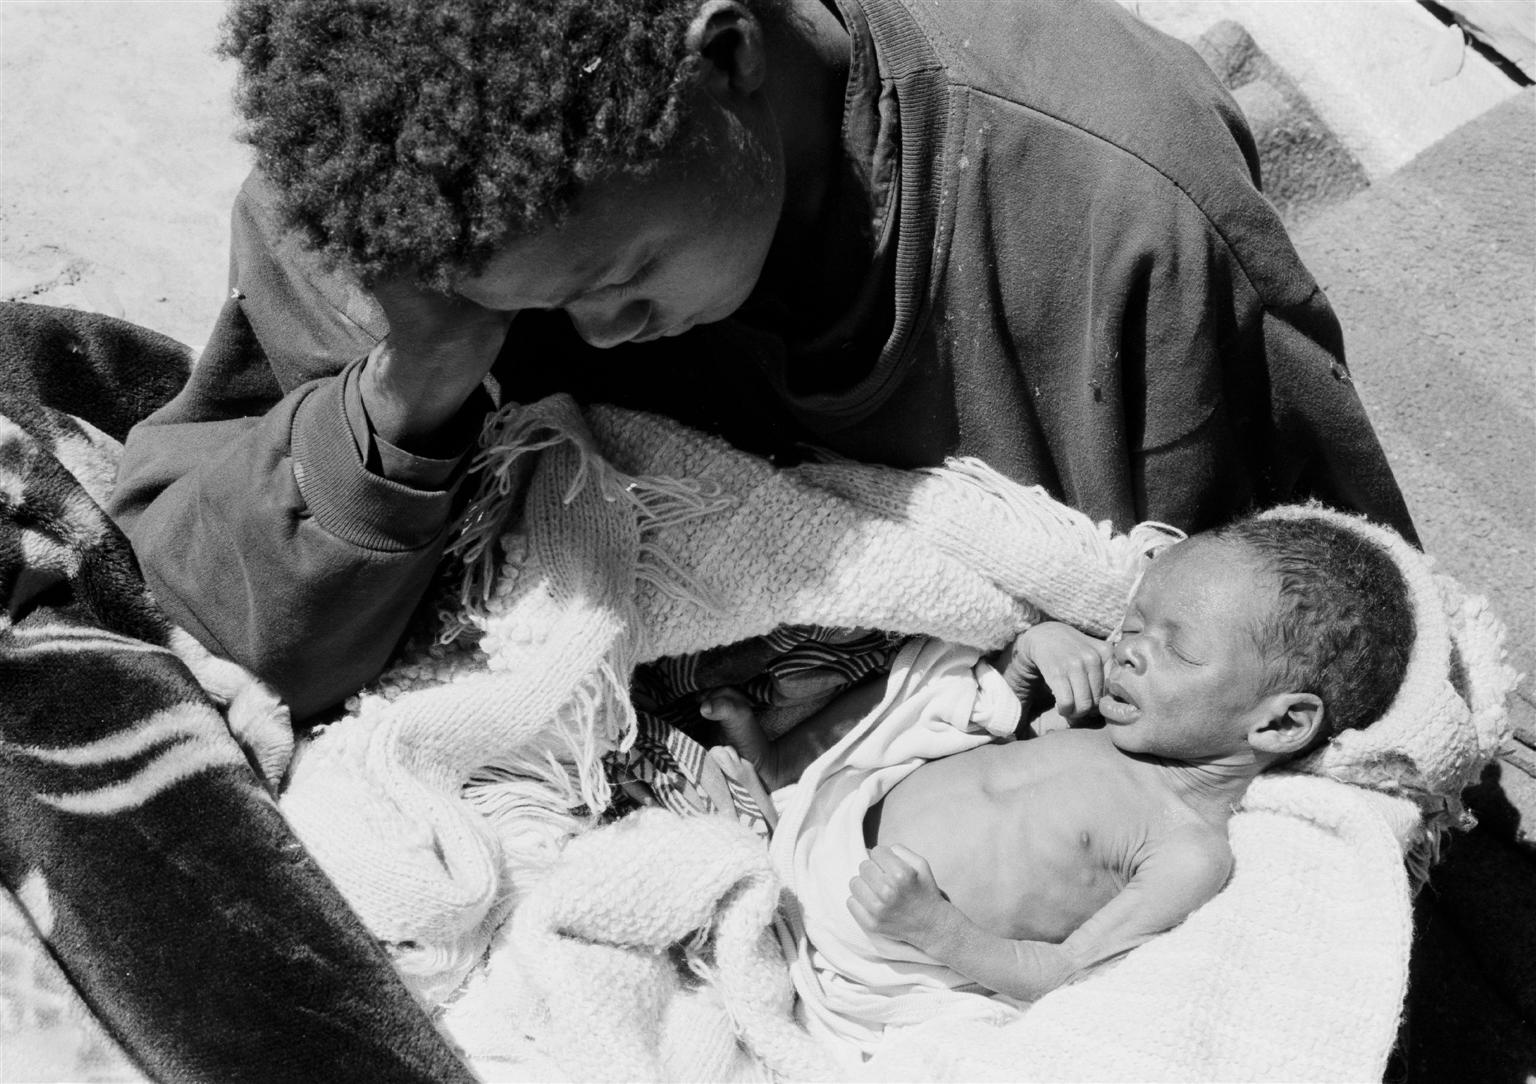 Mother leaning over a malnourished baby on her lap